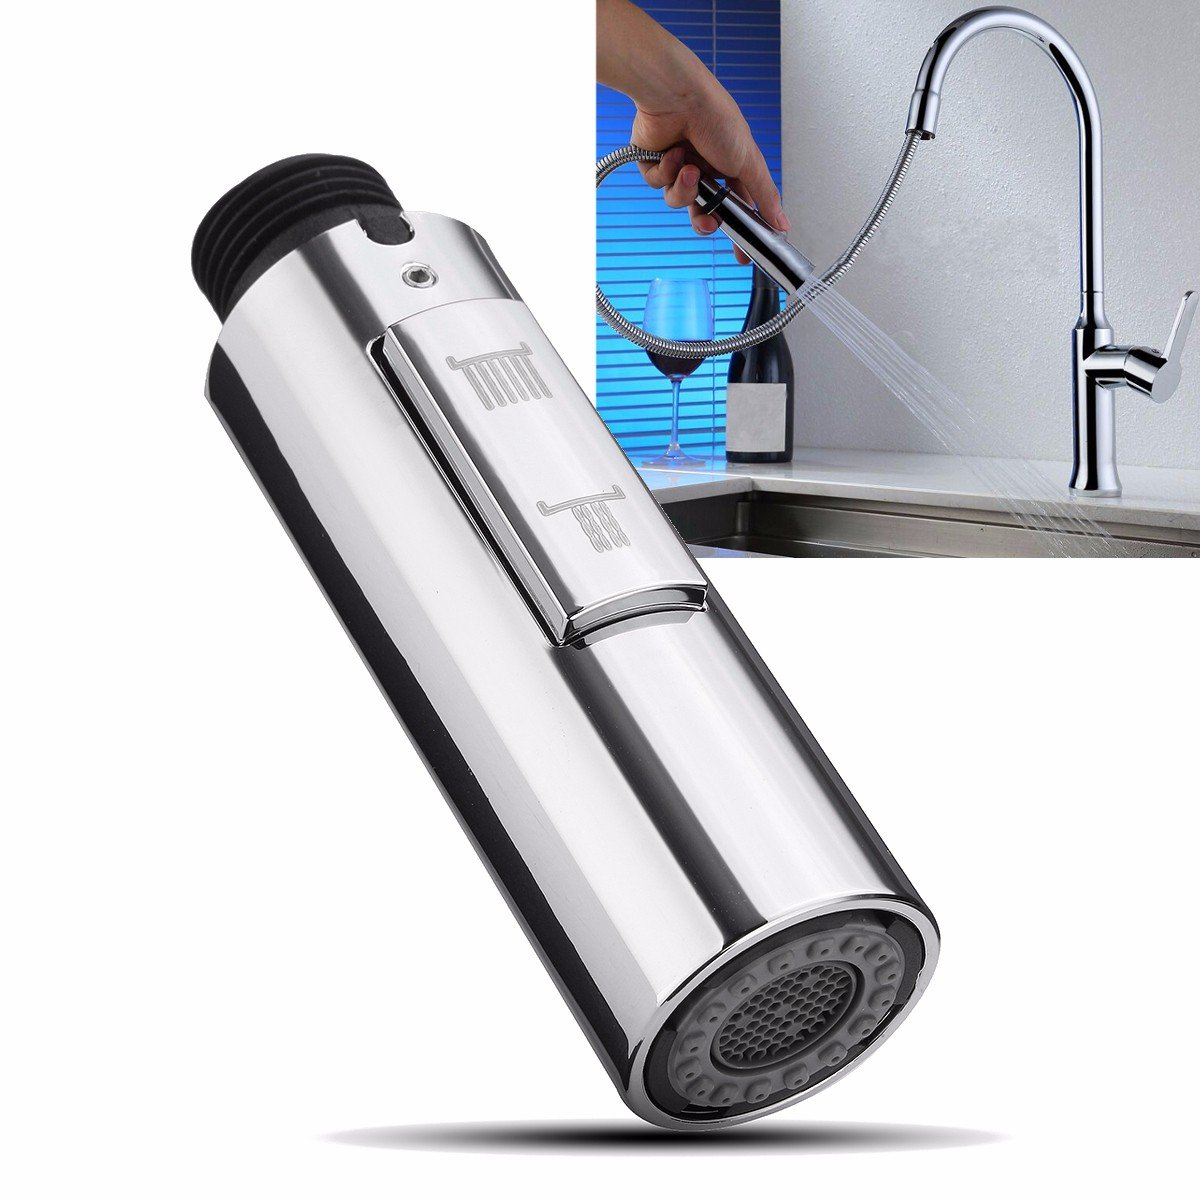 Rip Down Spray - 2 Function Replacement Pull Spray Mixer Tap Bath Sink Faucet Shower Head - Rend Impossible Drag Unconsciou Atomizer Prohibited Draw Commit Unstylish Attract - 1PCs by Unknown